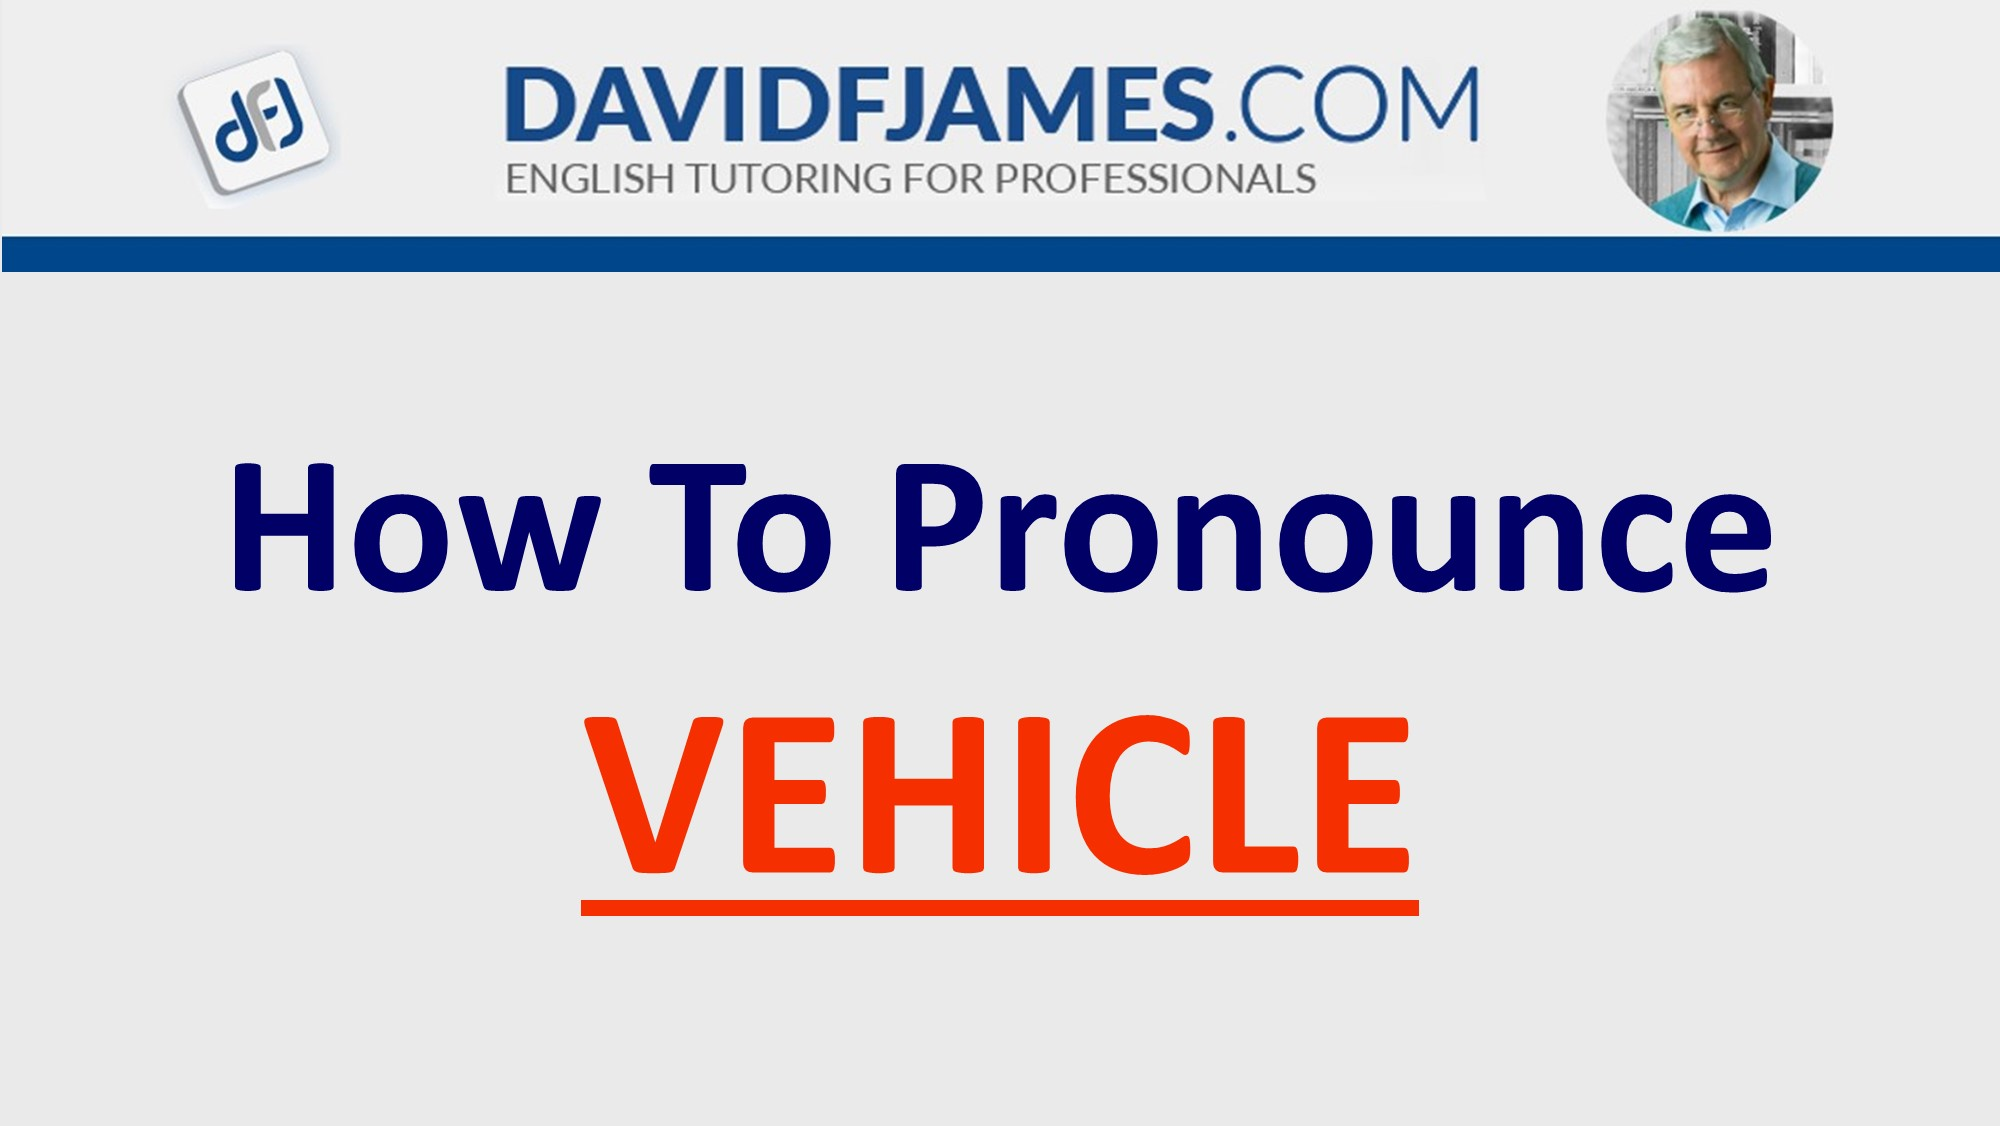 How to Pronounce VEHICLE